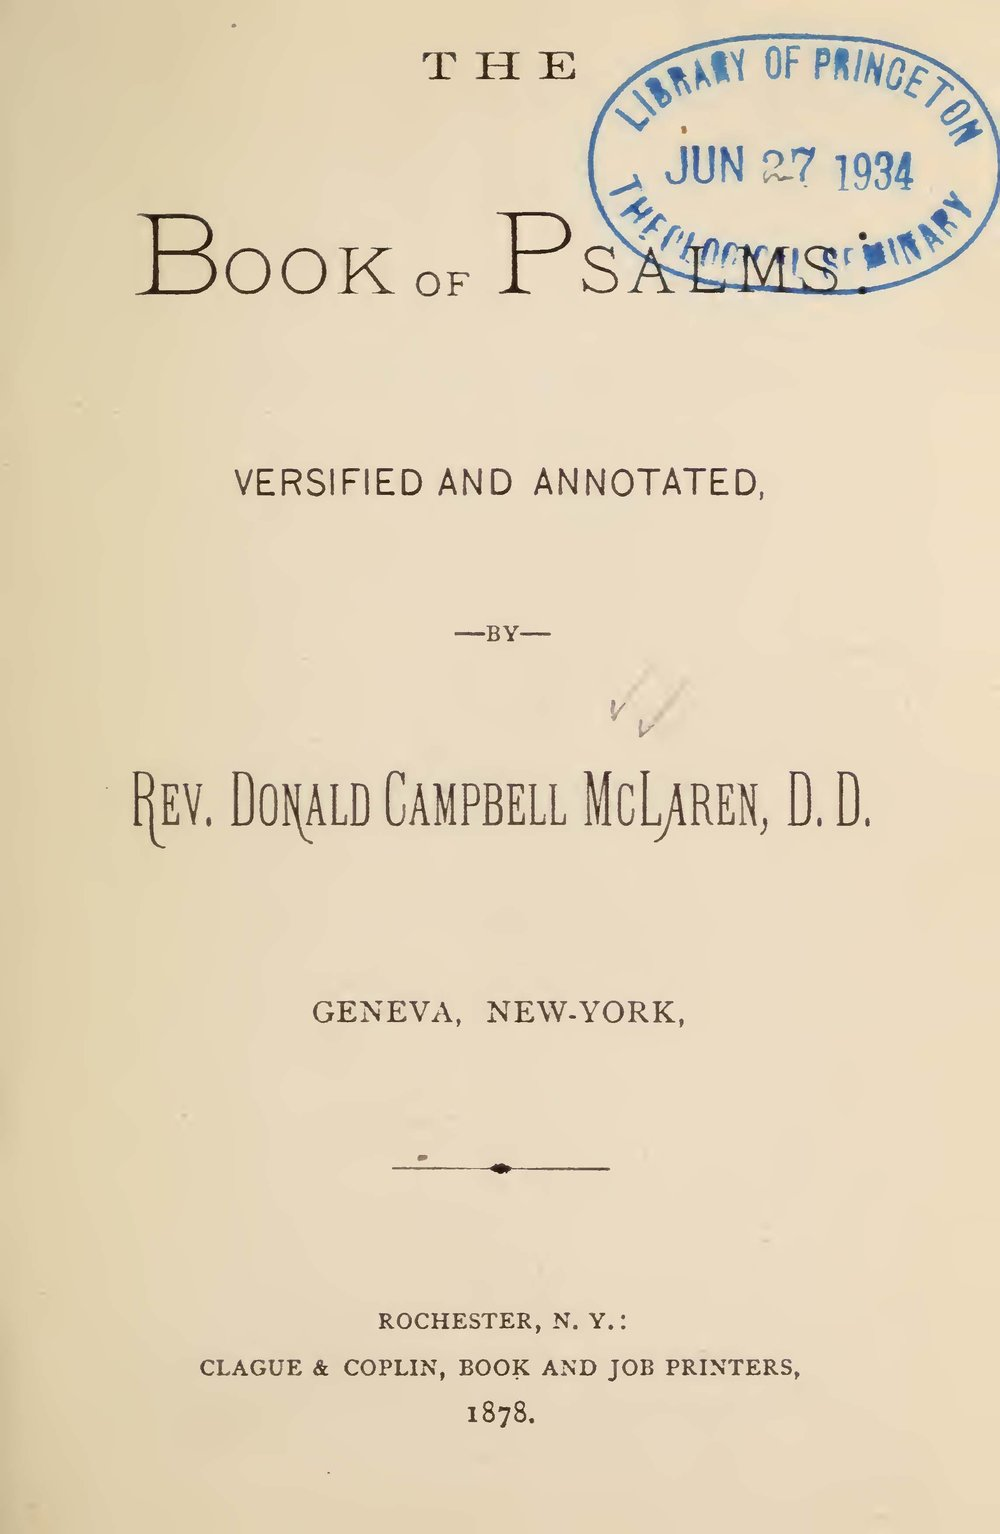 McLaren, Donald Campbell, The Book of Psalms Versified and Annotated Title Page.jpg